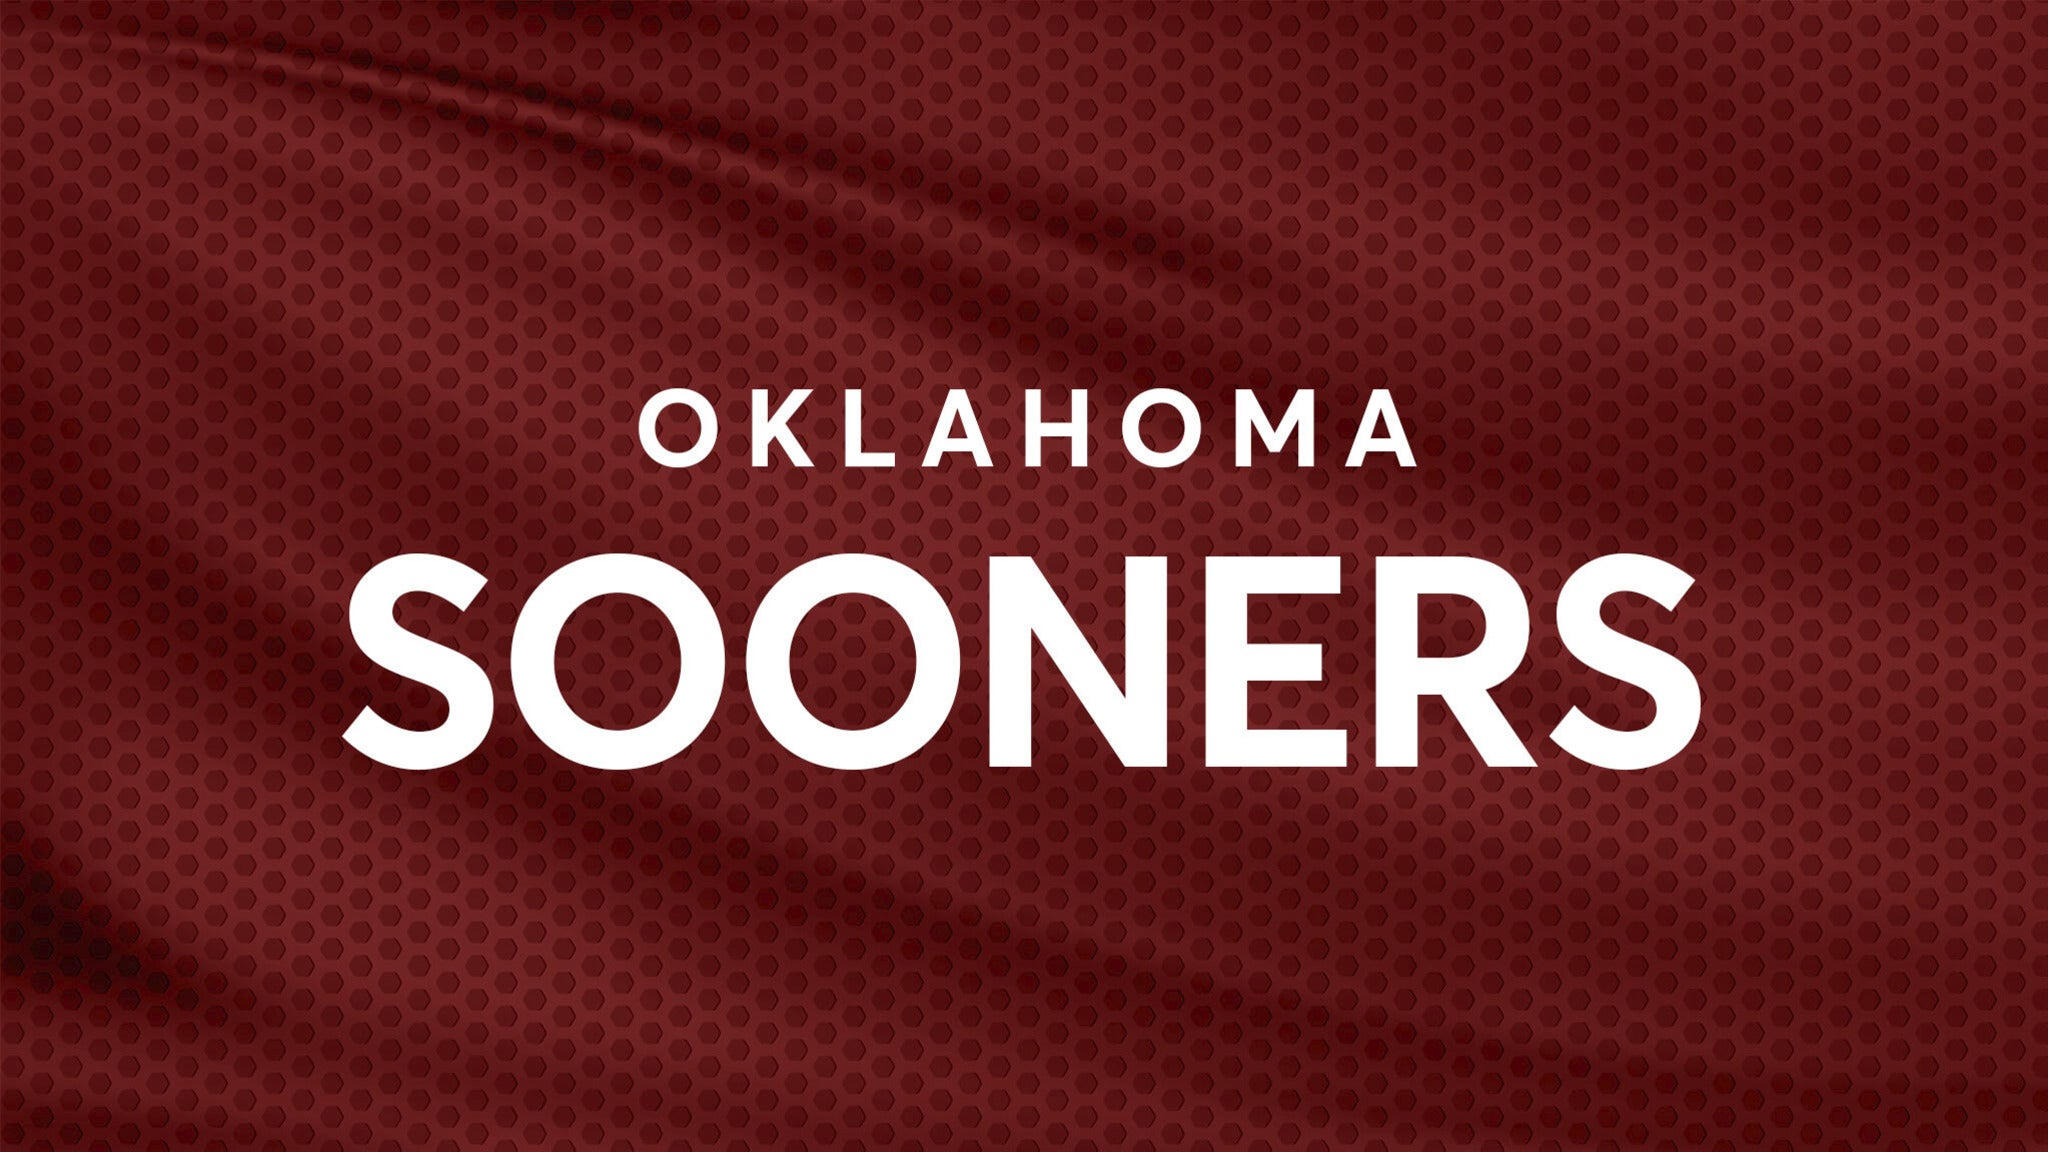 Oklahoma Sooners Mens Basketball